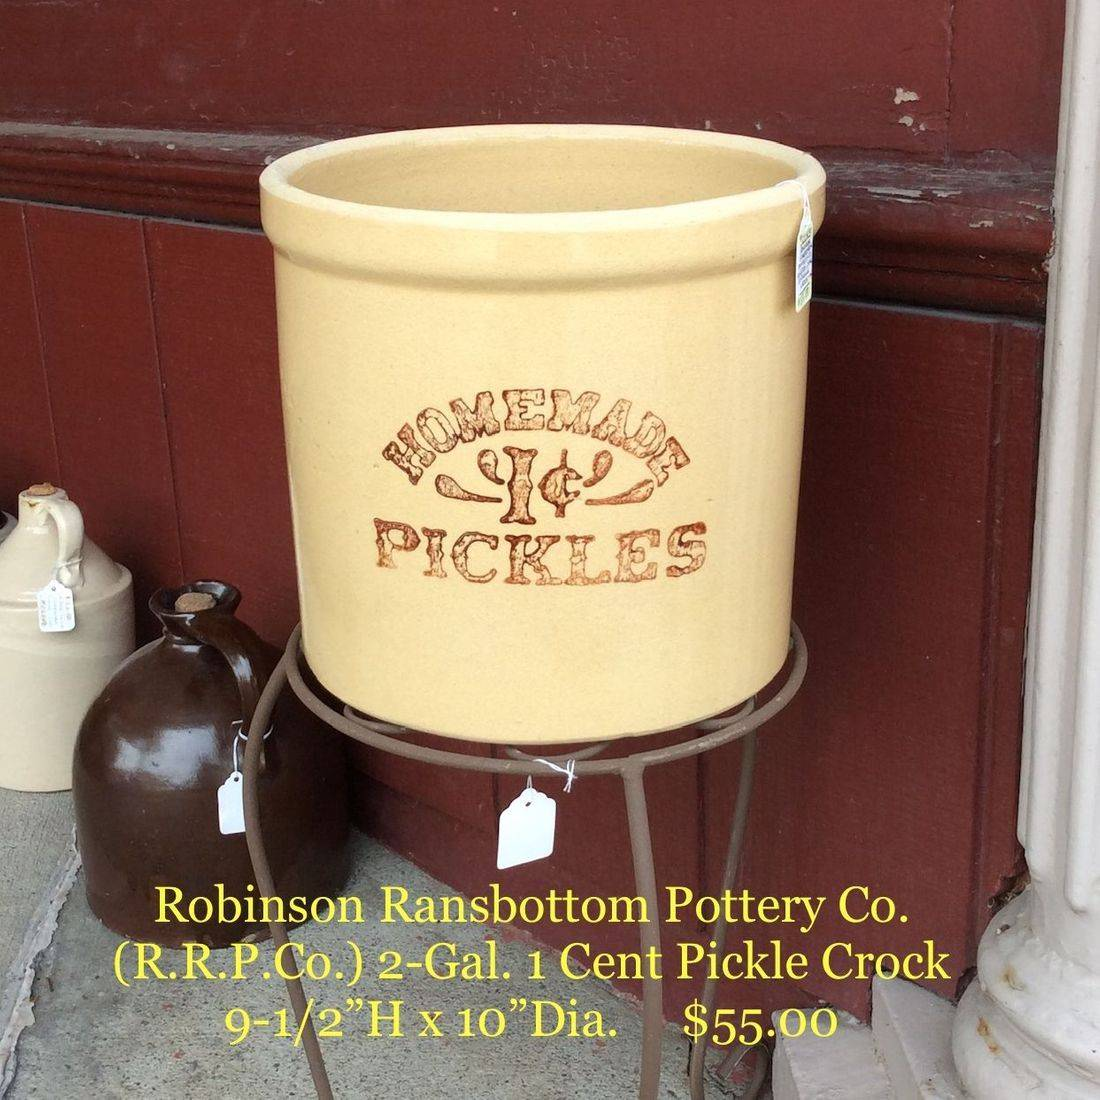 Robinson Ransbottom Pottery Co. (R.R.P.Co.), 2-Gal. 1 Cent Pickle Crock (as seen on Friends)   $55.00